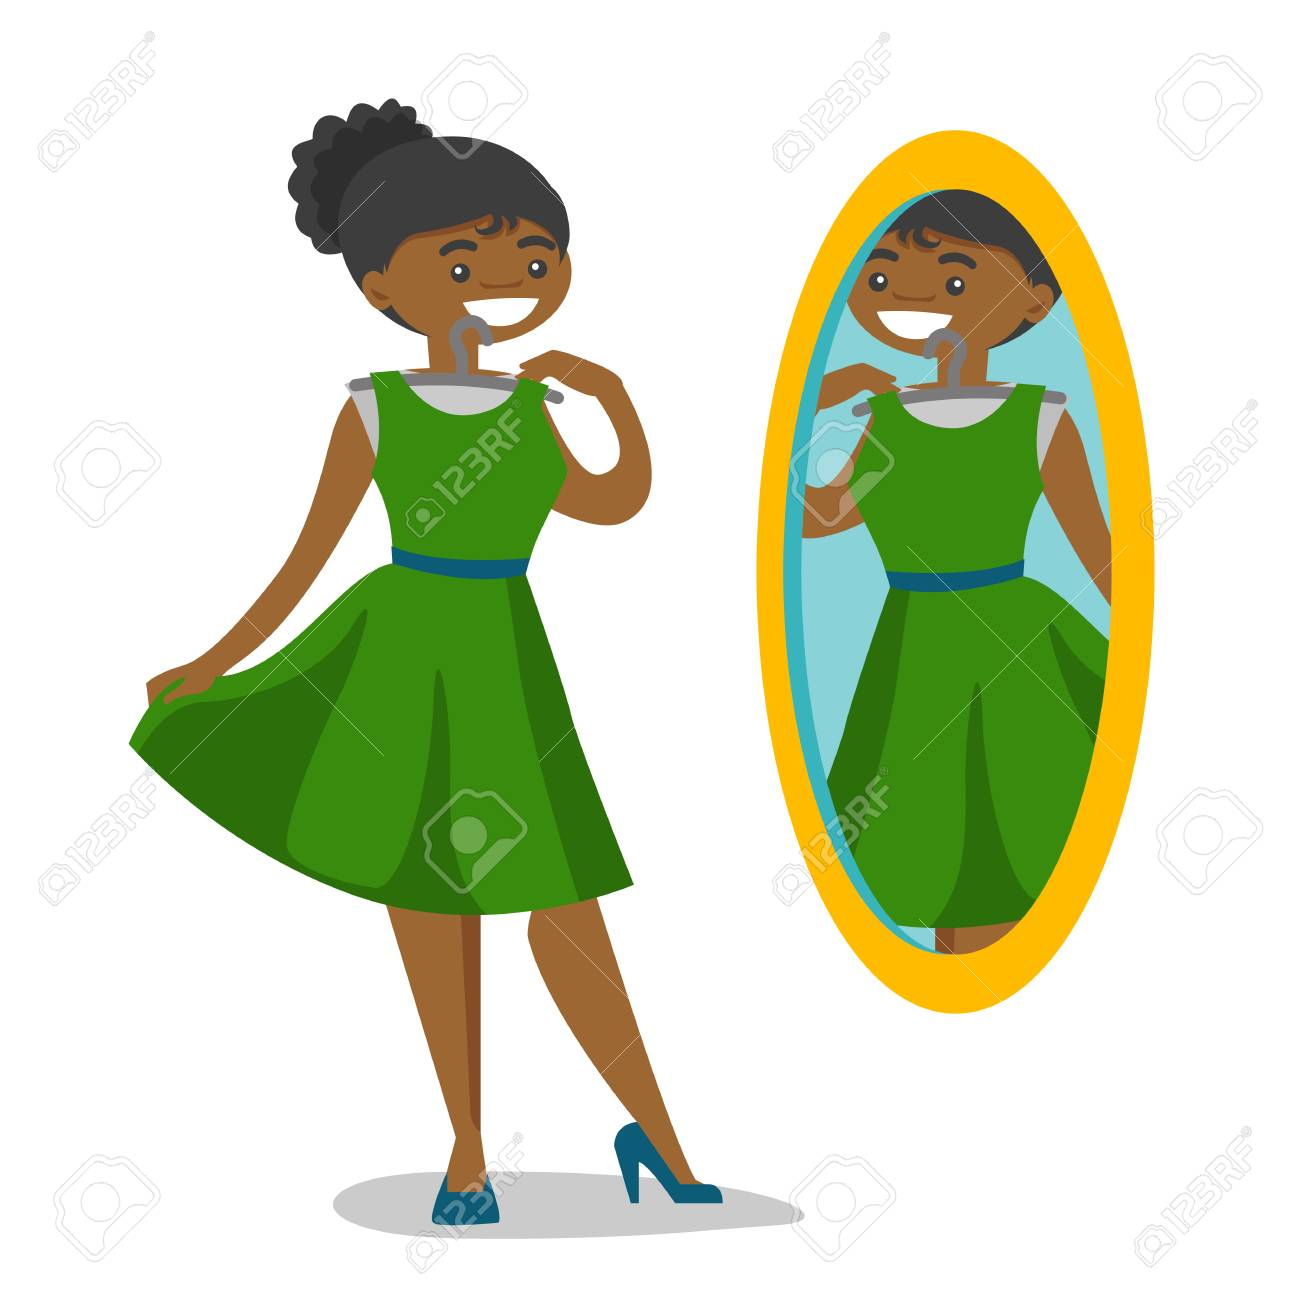 African-american woman trying on dress and looking at herself in the mirror in the dressing room. Woman choosing clothes in the dressing room. Vector cartoon illustration isolated on white background. - 99155447